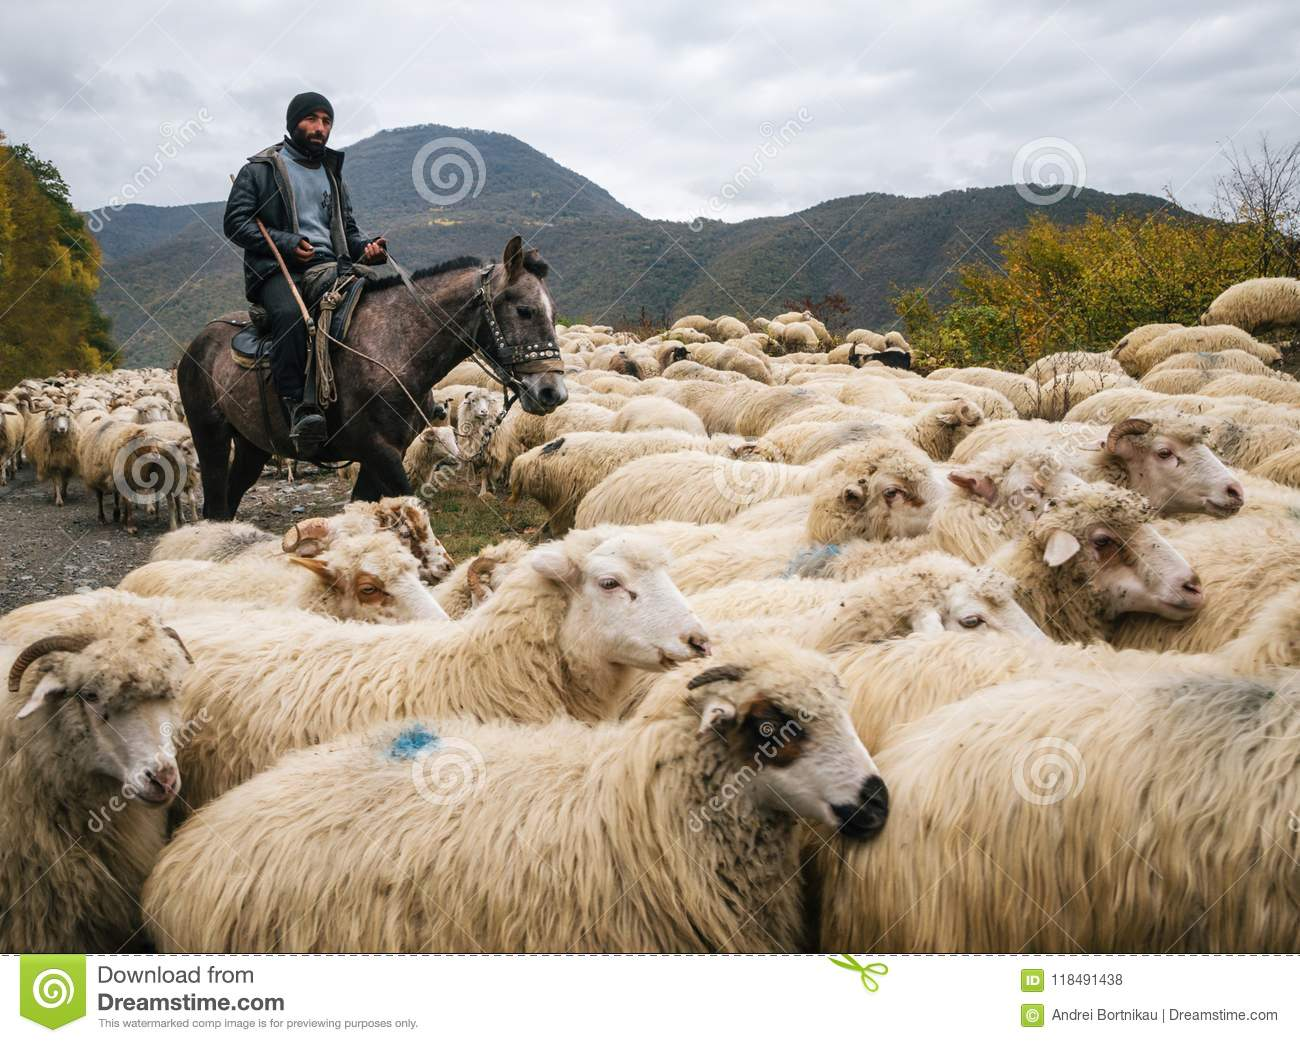 Shepherd with crook riding horse and herding group of sheep